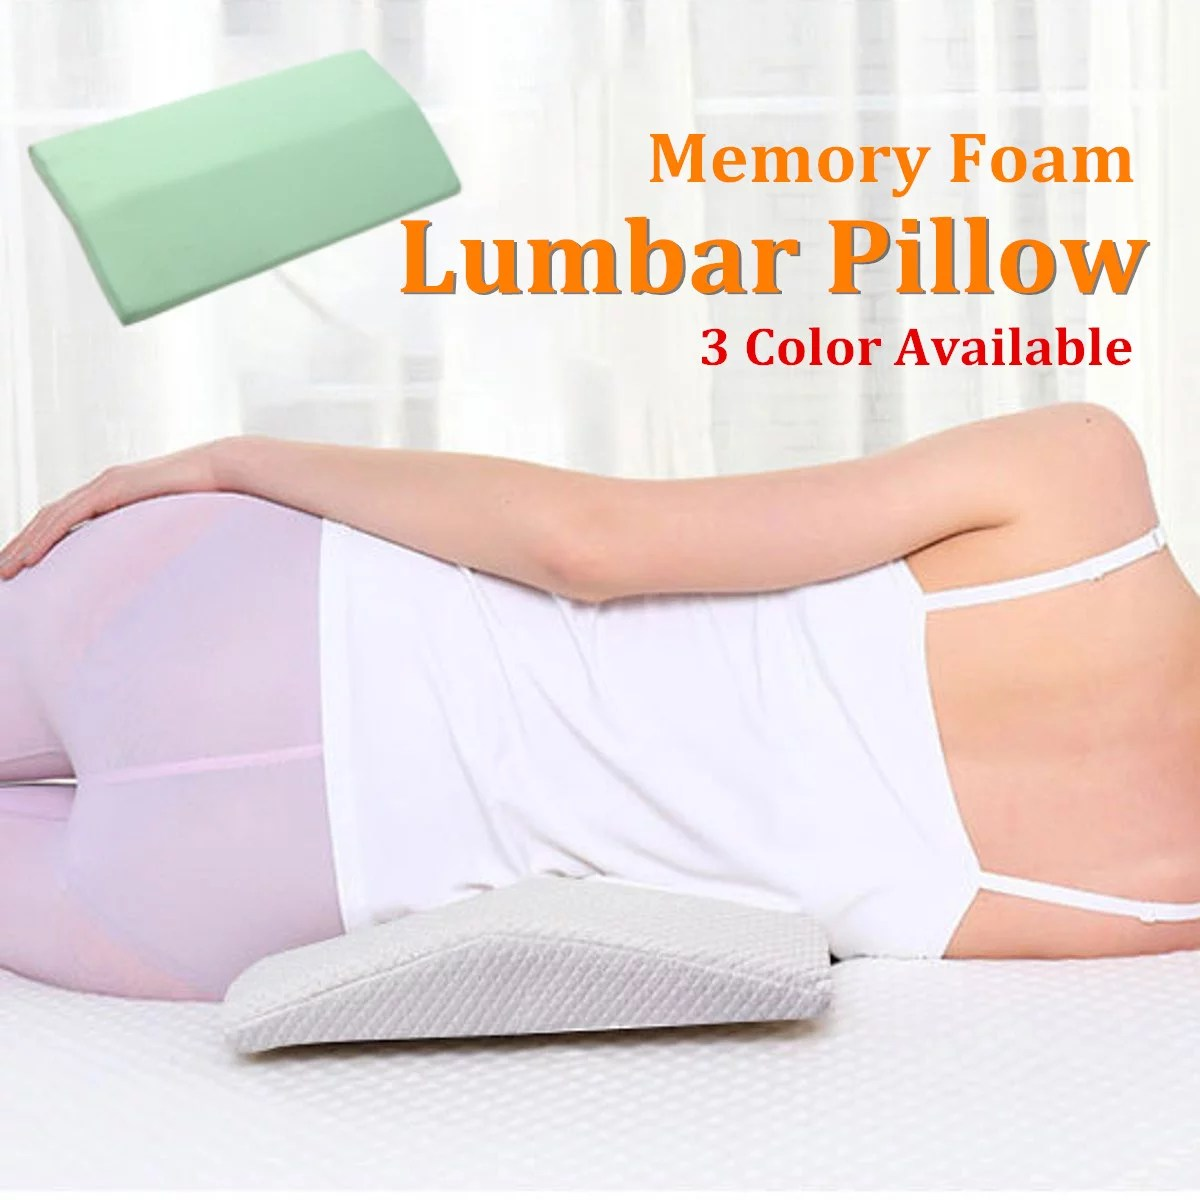 lumbar pillow for sleeping memory foam back pain support lower back cushion in bed waist support cushion pregnant woman hip knee spine alignment